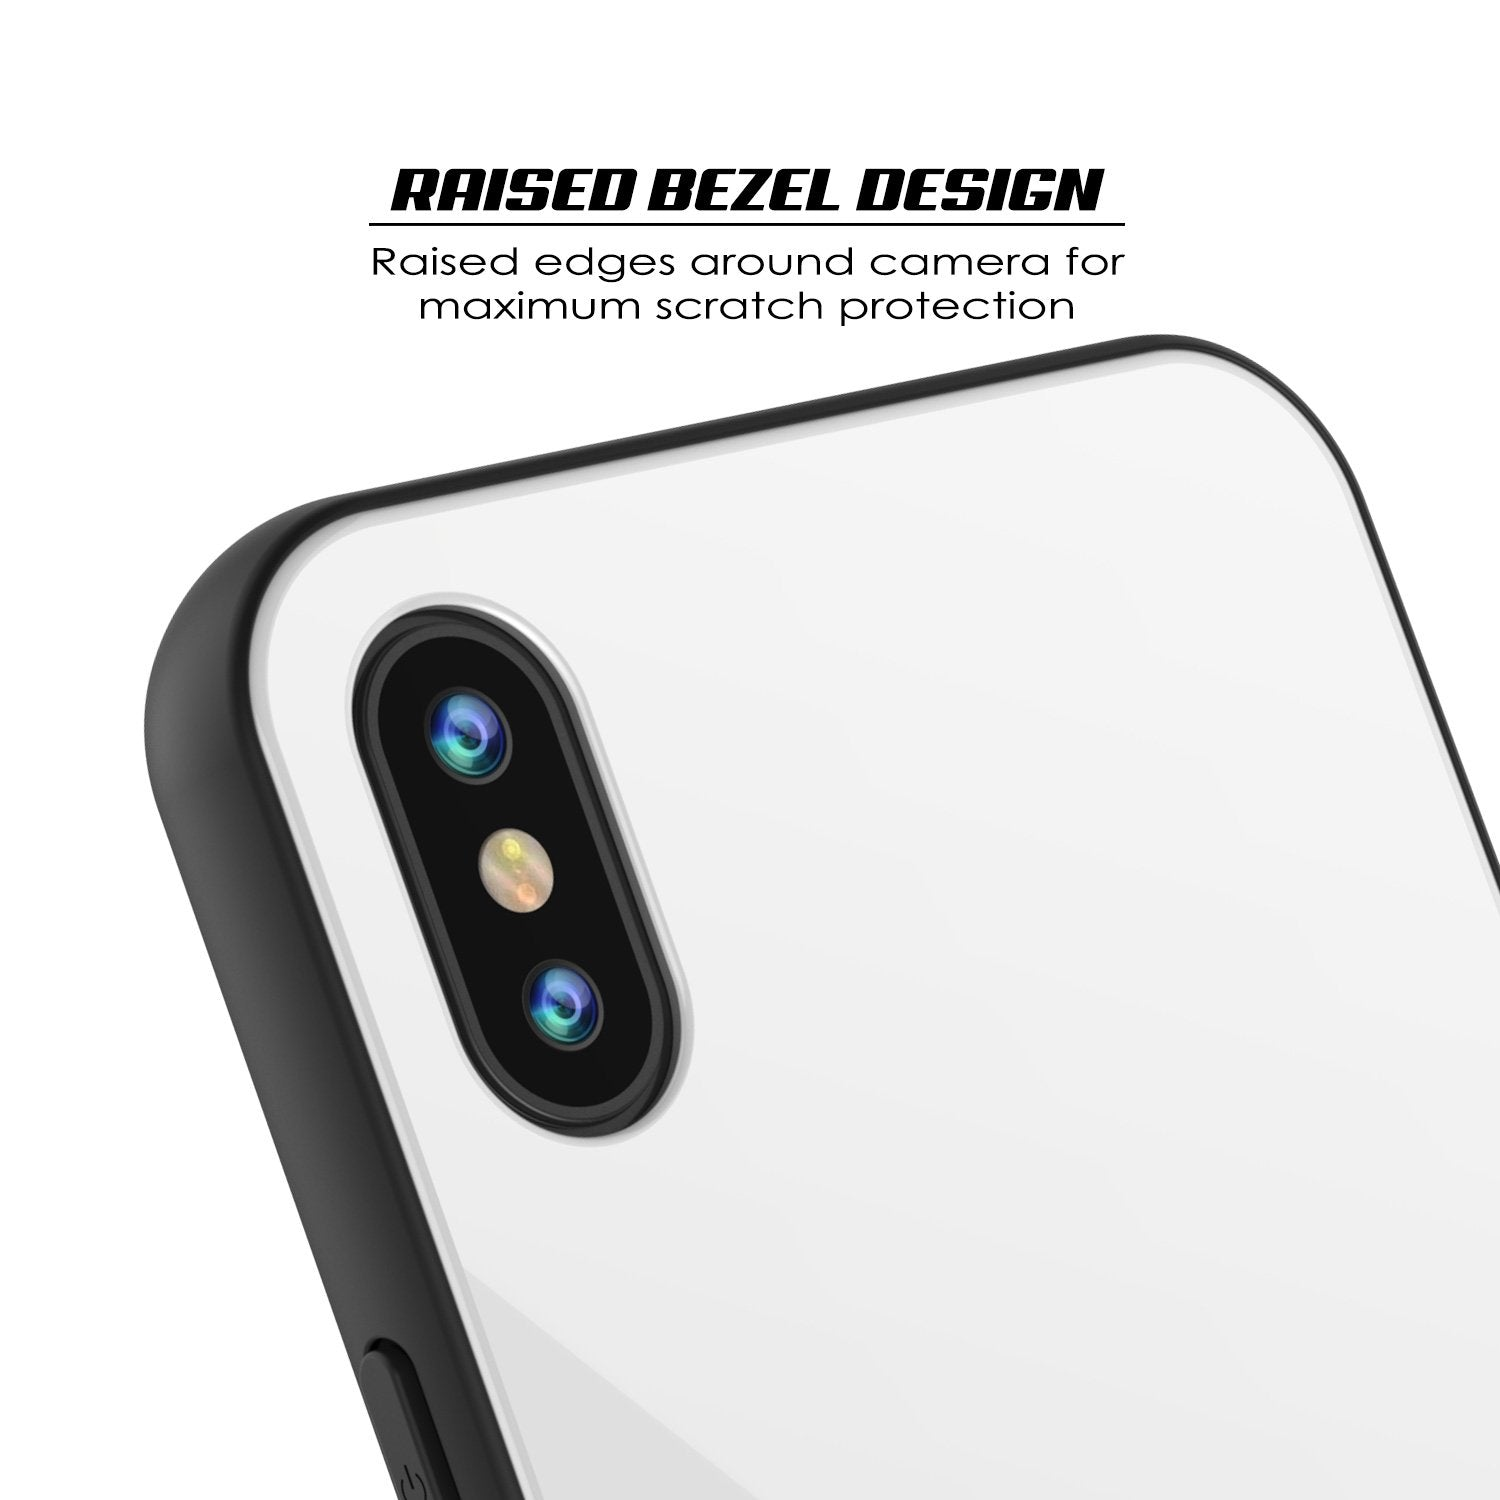 iPhone X Case, Punkcase GlassShield Ultra Thin Protective 9H Full Body Tempered Glass Cover W/ Drop Protection & Non Slip Grip for Apple iPhone 10 [White]